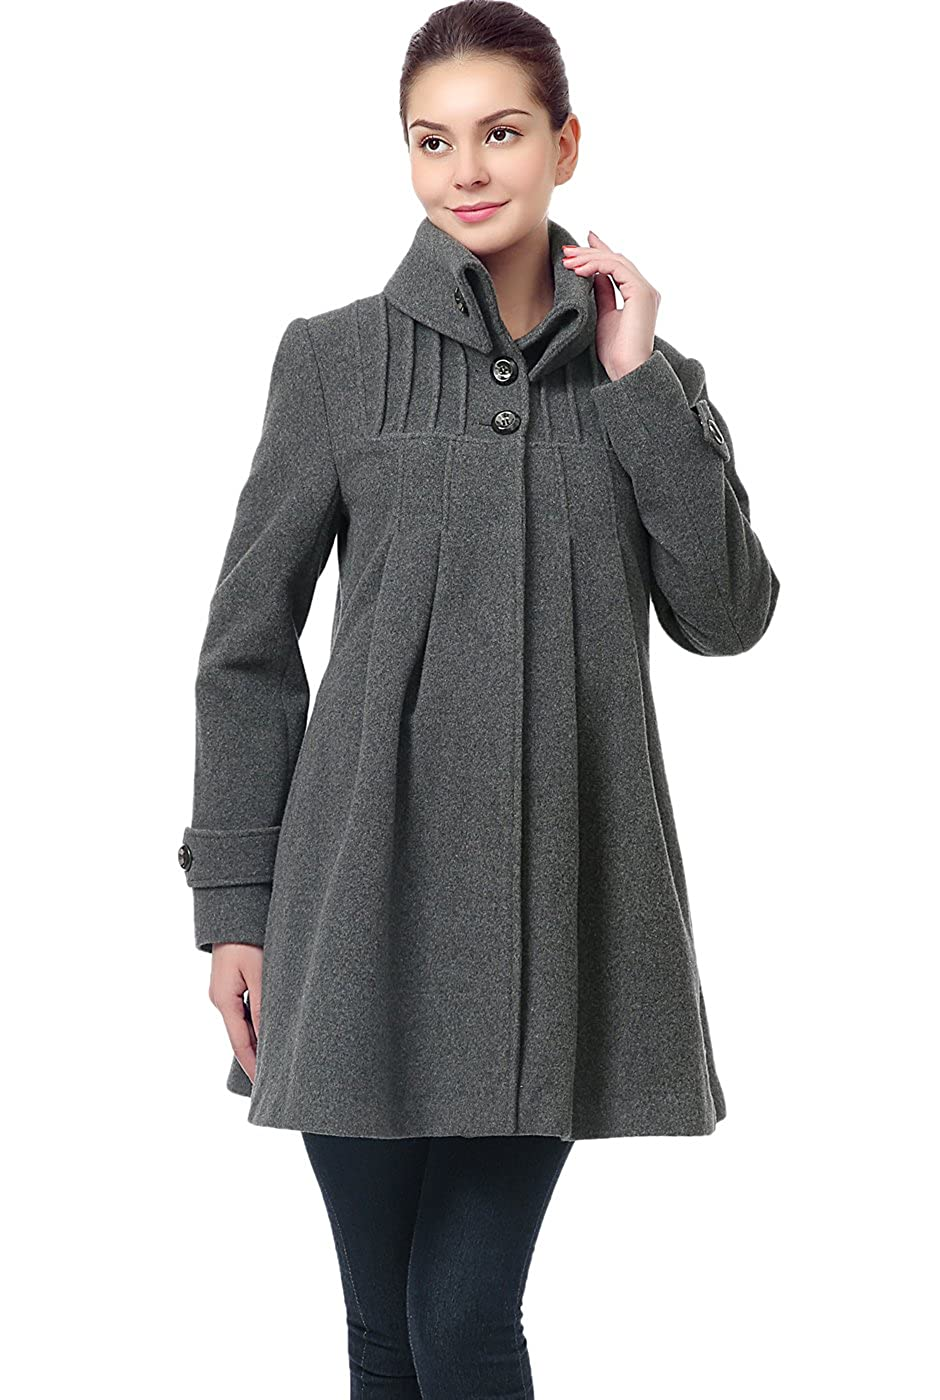 Momo Maternity Women's Wool Blend Pleated Swing Coat